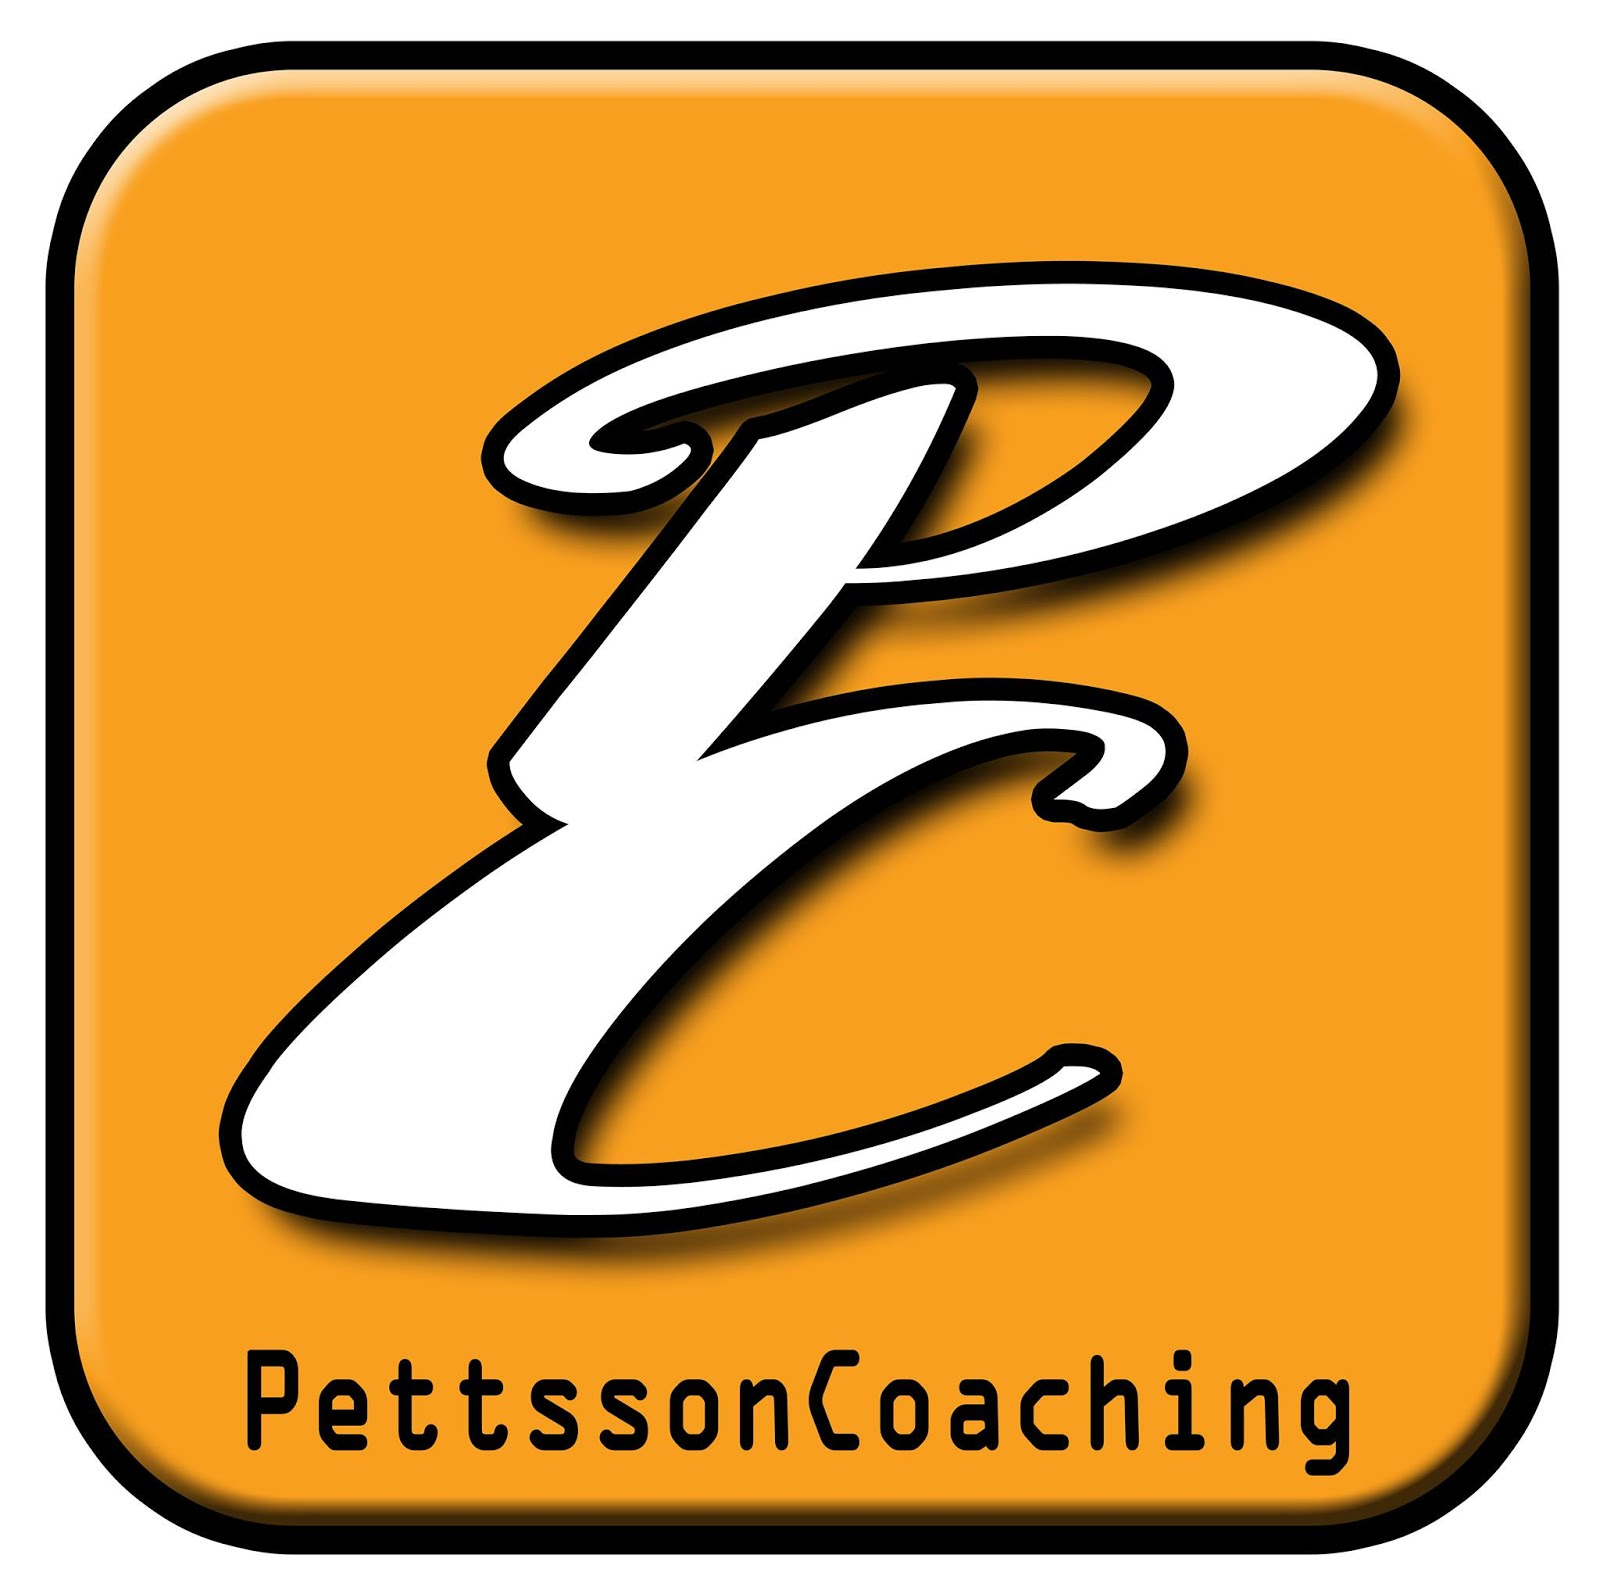 Pettsson Coaching